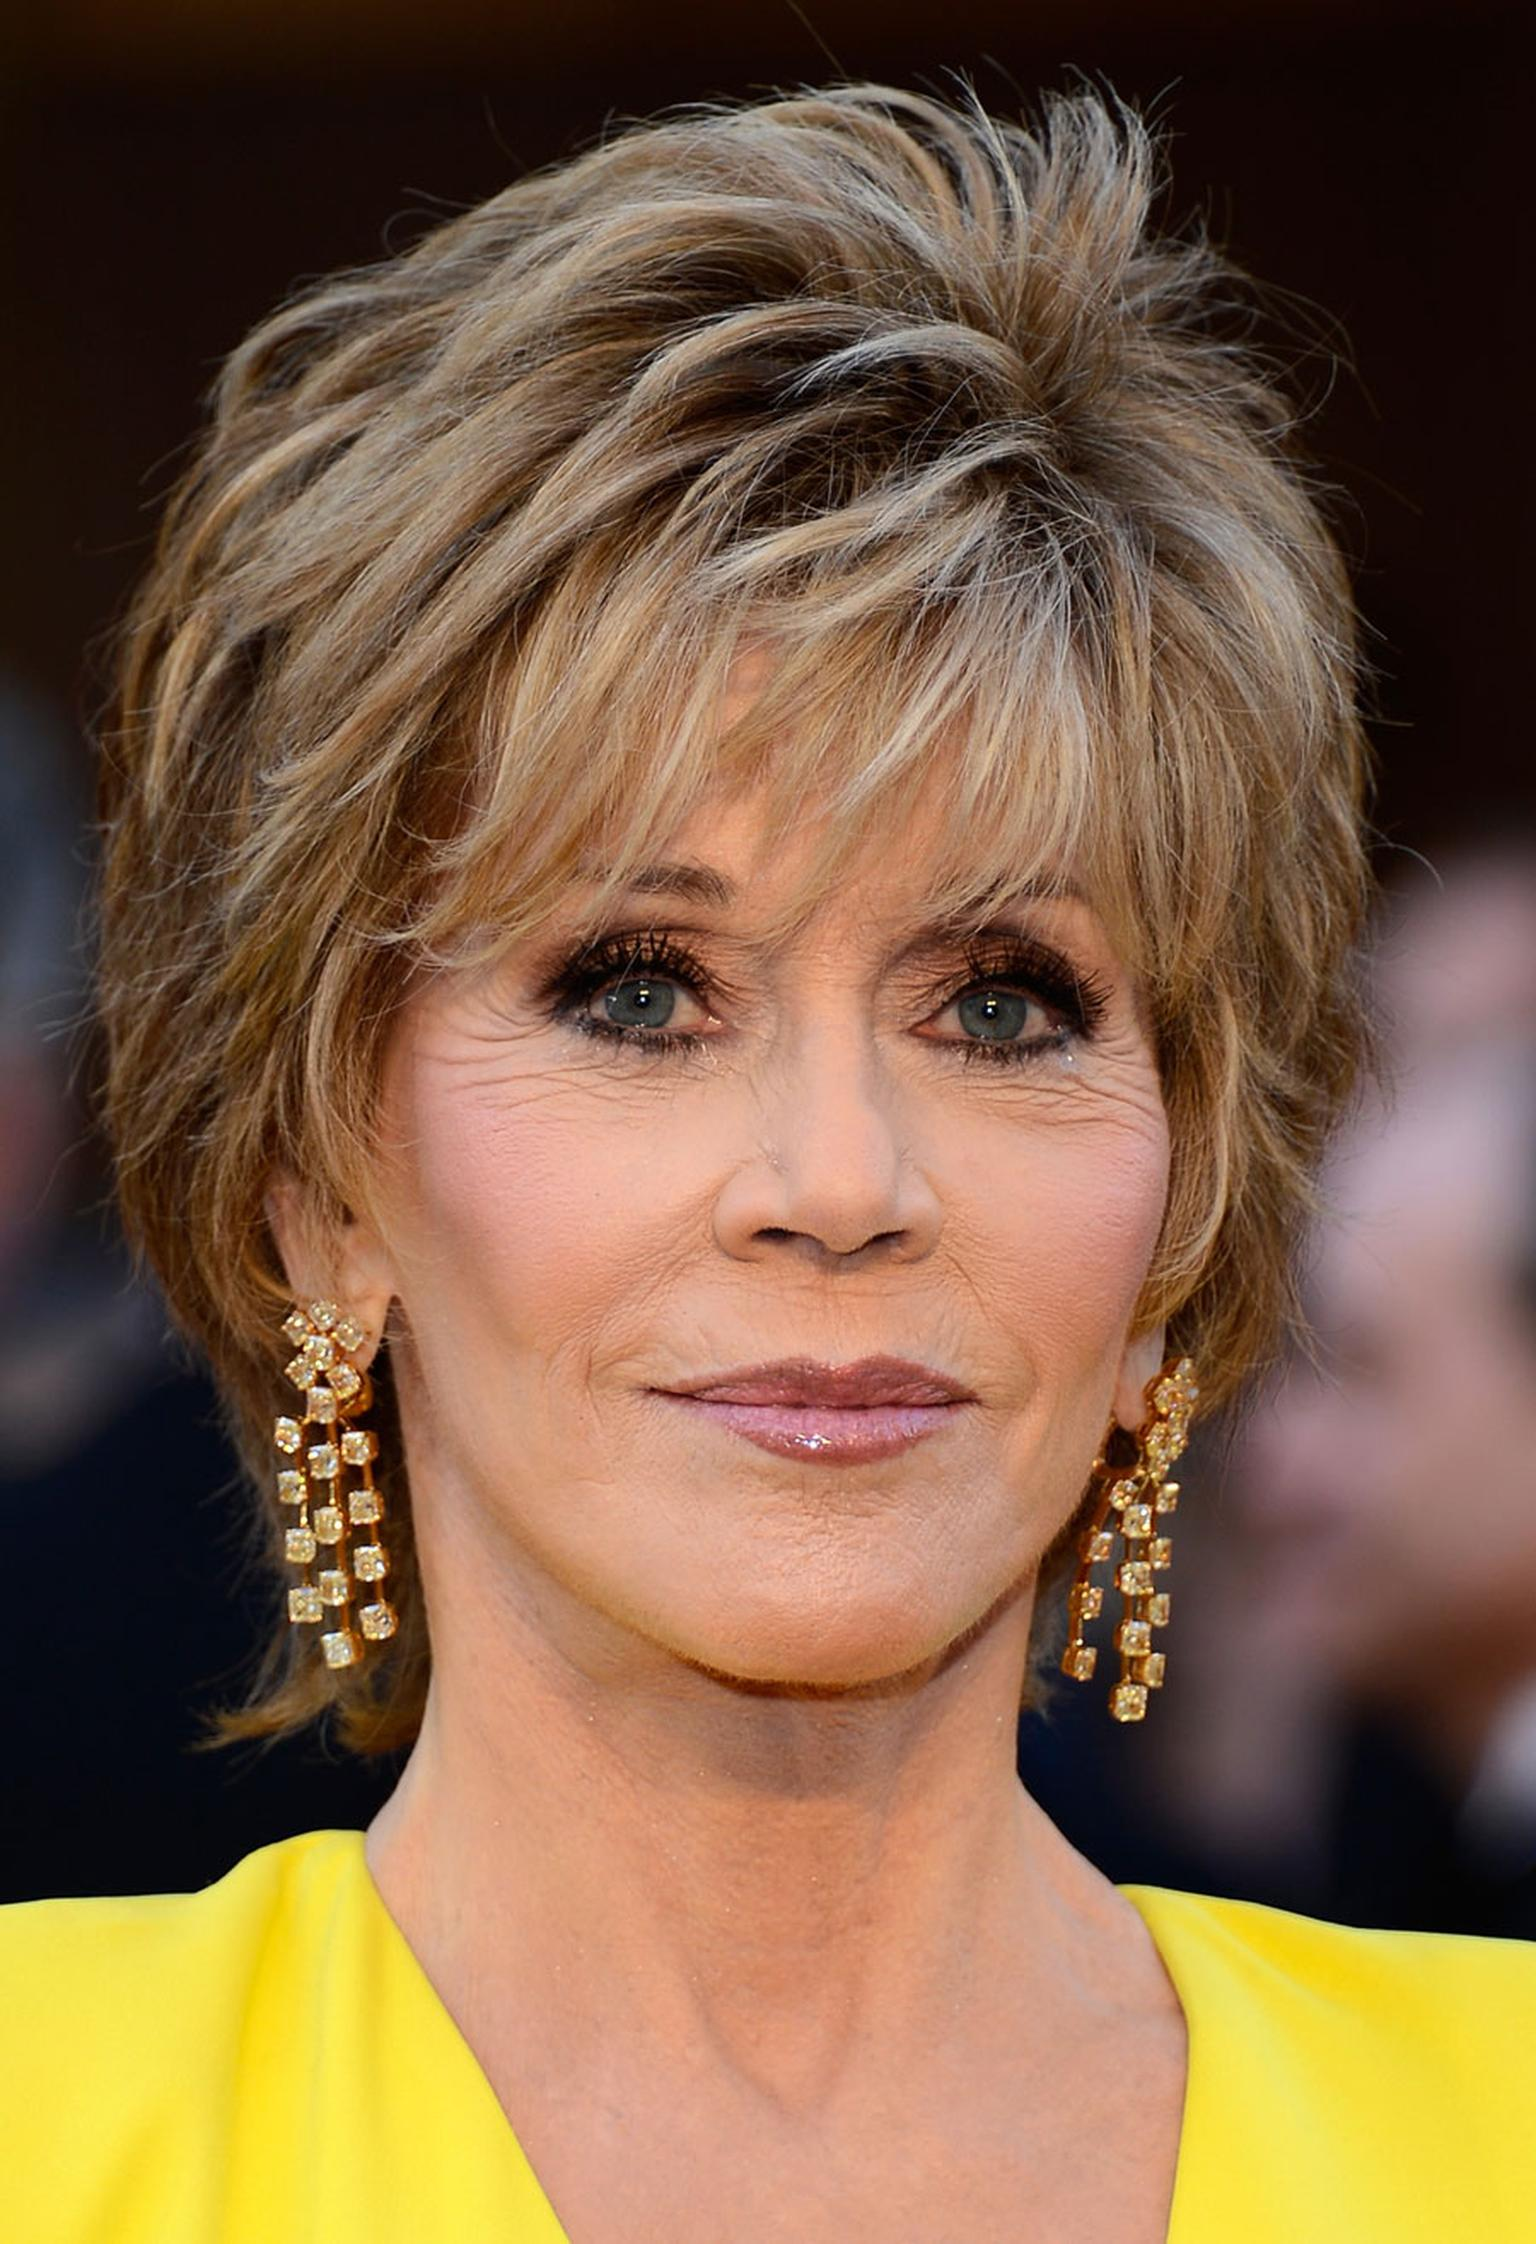 Jane-Fonda_wearing_Chopard_1.jpg